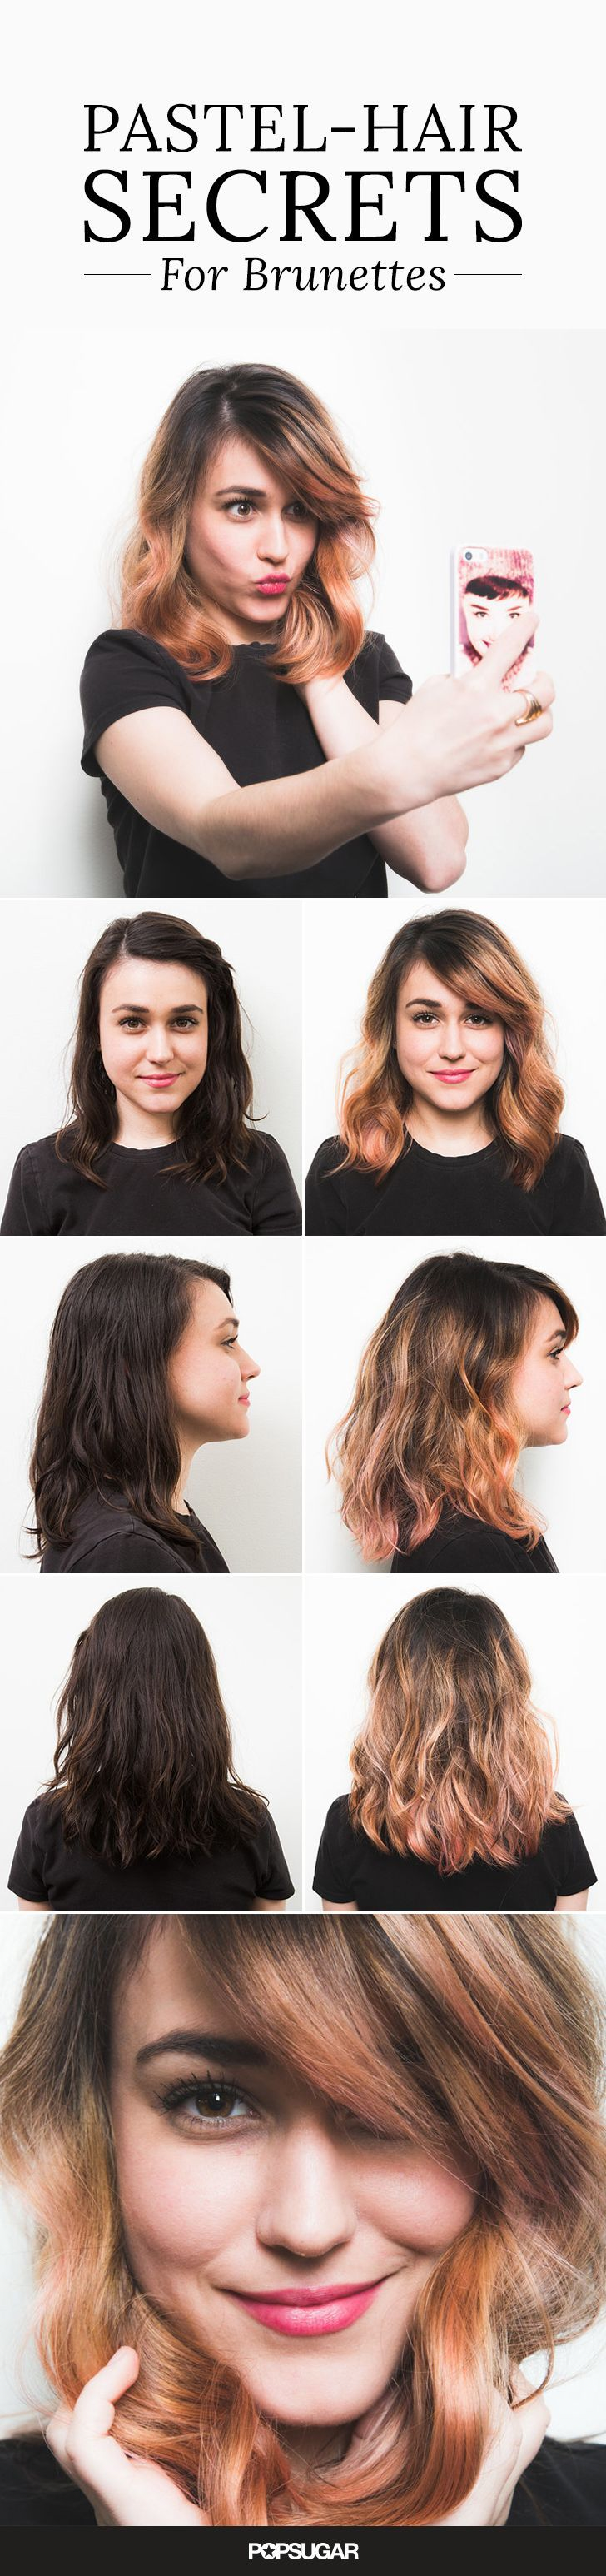 We know — it's not easy for brunettes to get in on all the rainbow hair fun. We got all the tips for making rose gold hair color pop on dark hair (and tricks to boost the hue when it starts to fade).